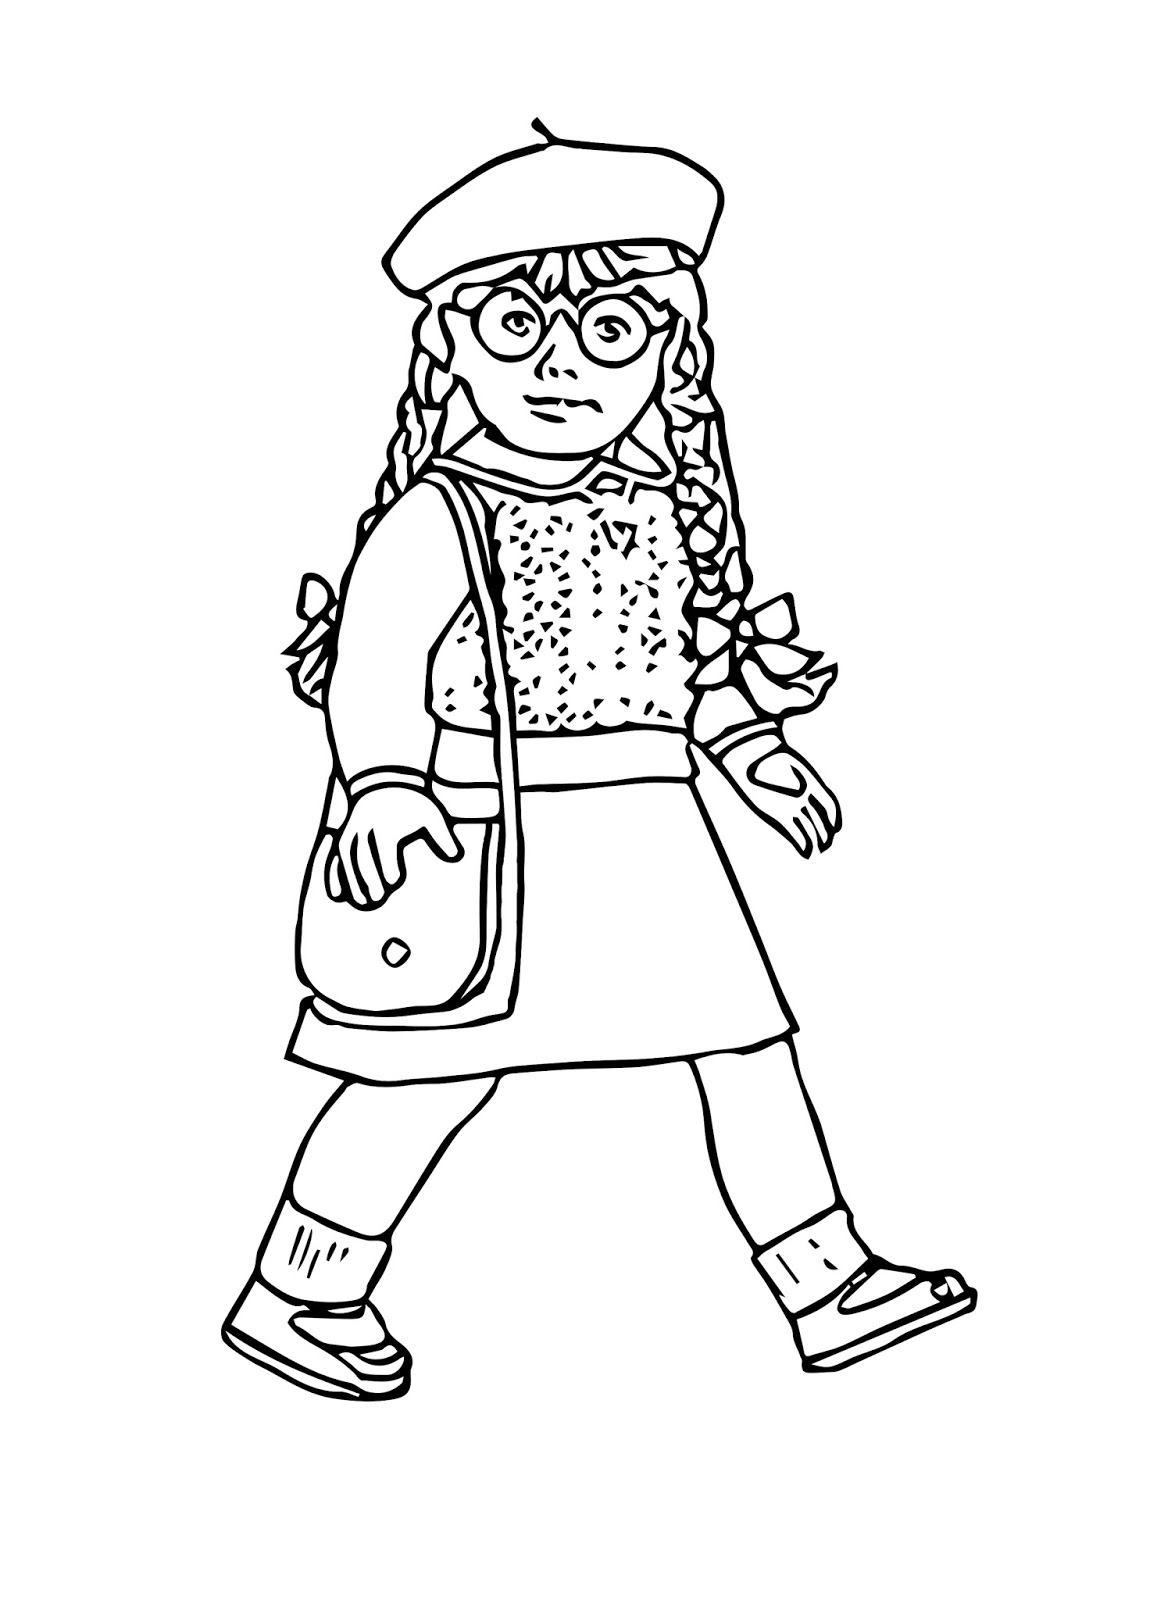 printable coloring sheets for girls free printable cute coloring pages for girls quotes that printable coloring for sheets girls